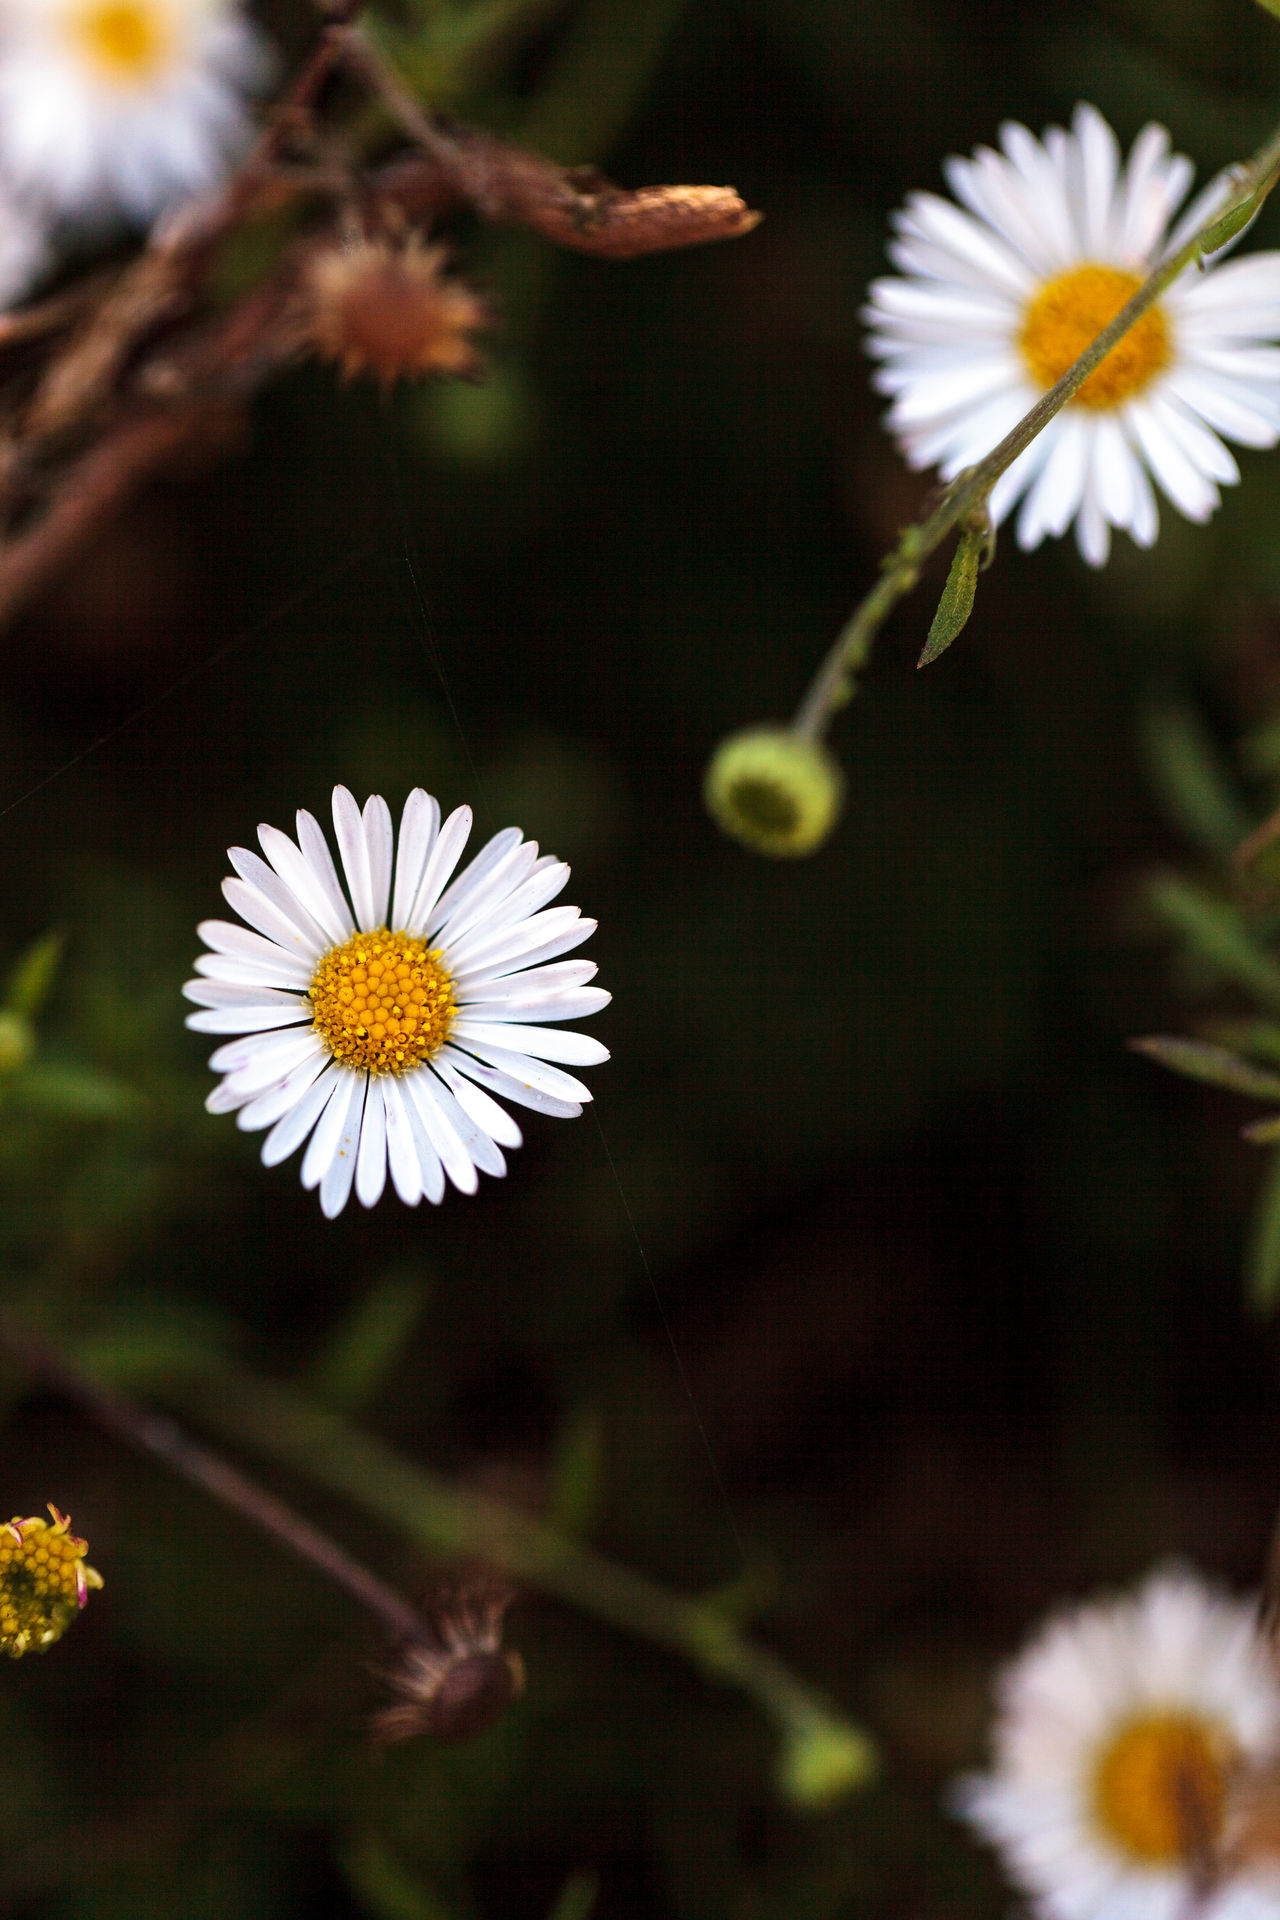 Tiny white fleabane daisy Erigeron flower blooms on a green background in a garden in summer Beauty In Nature Bloom Blossom Botany Close-up Daisies Daisy Erigeron Fleabane Flower Fragility Freshness Growth In Bloom Nature Petal Pollen Season  Softness Springtime Stamen Stem White White Color